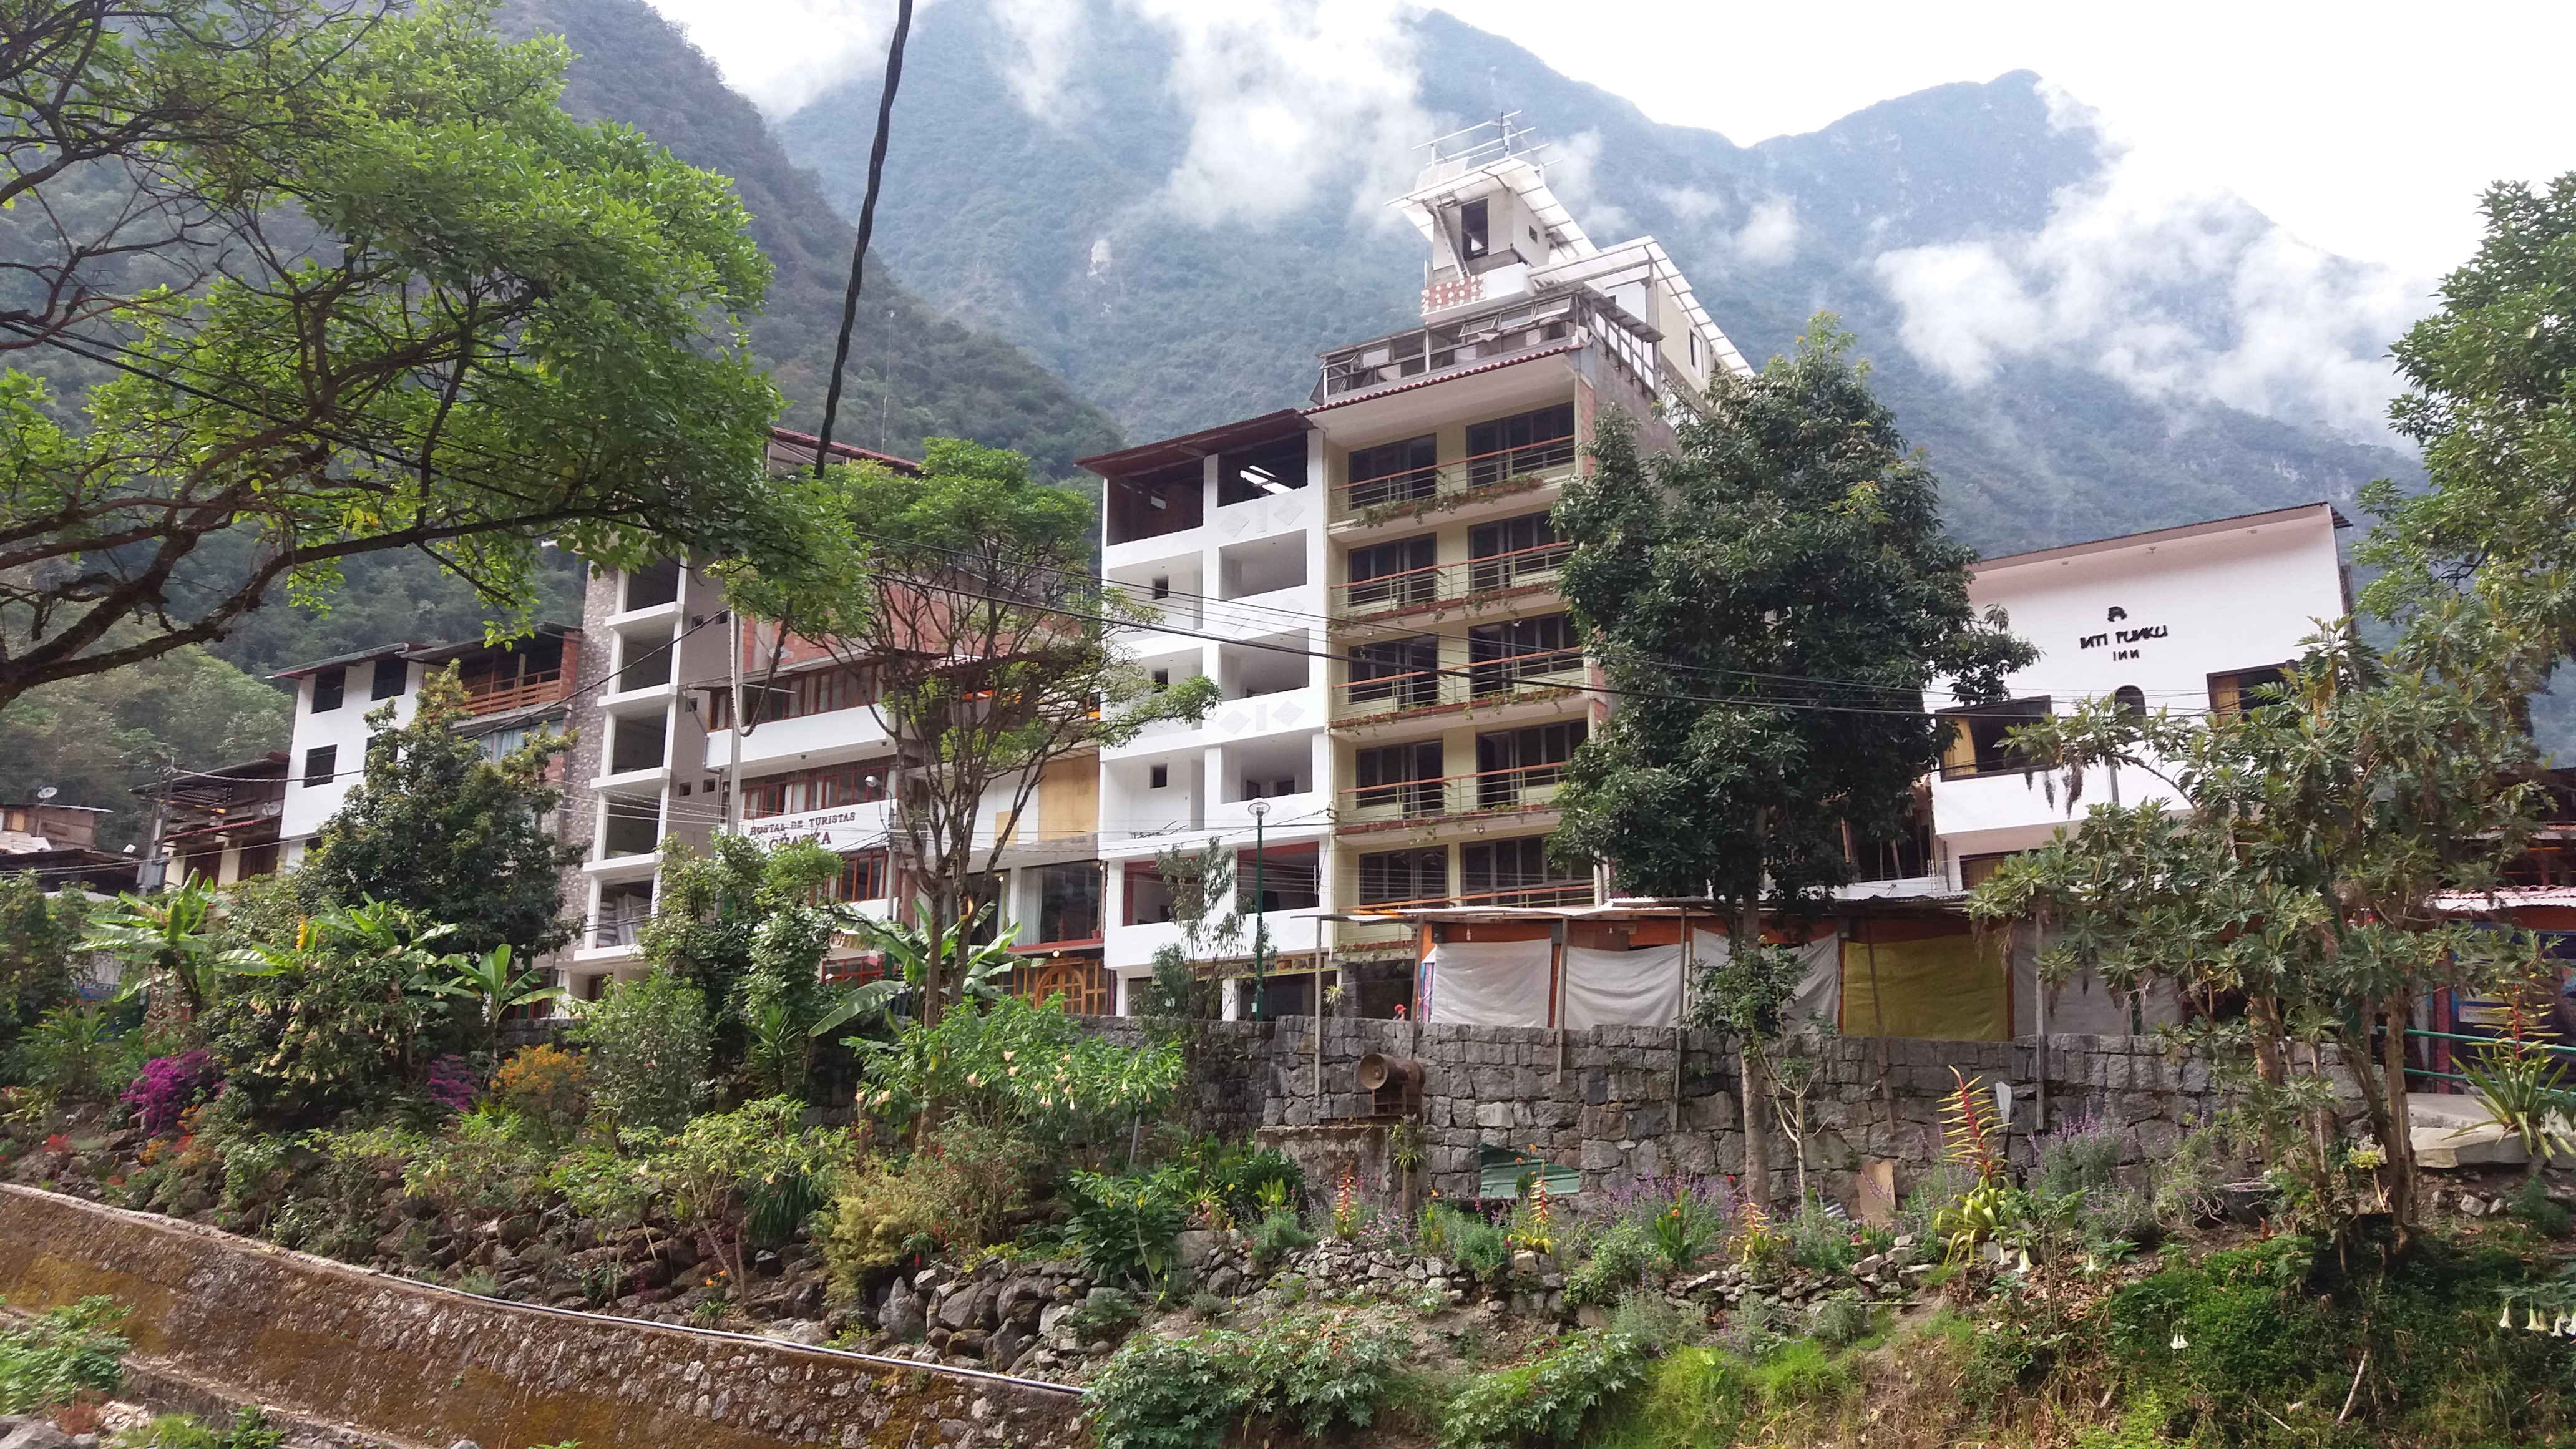 Aguas Calientes, a town located at the bottom of the mountain.